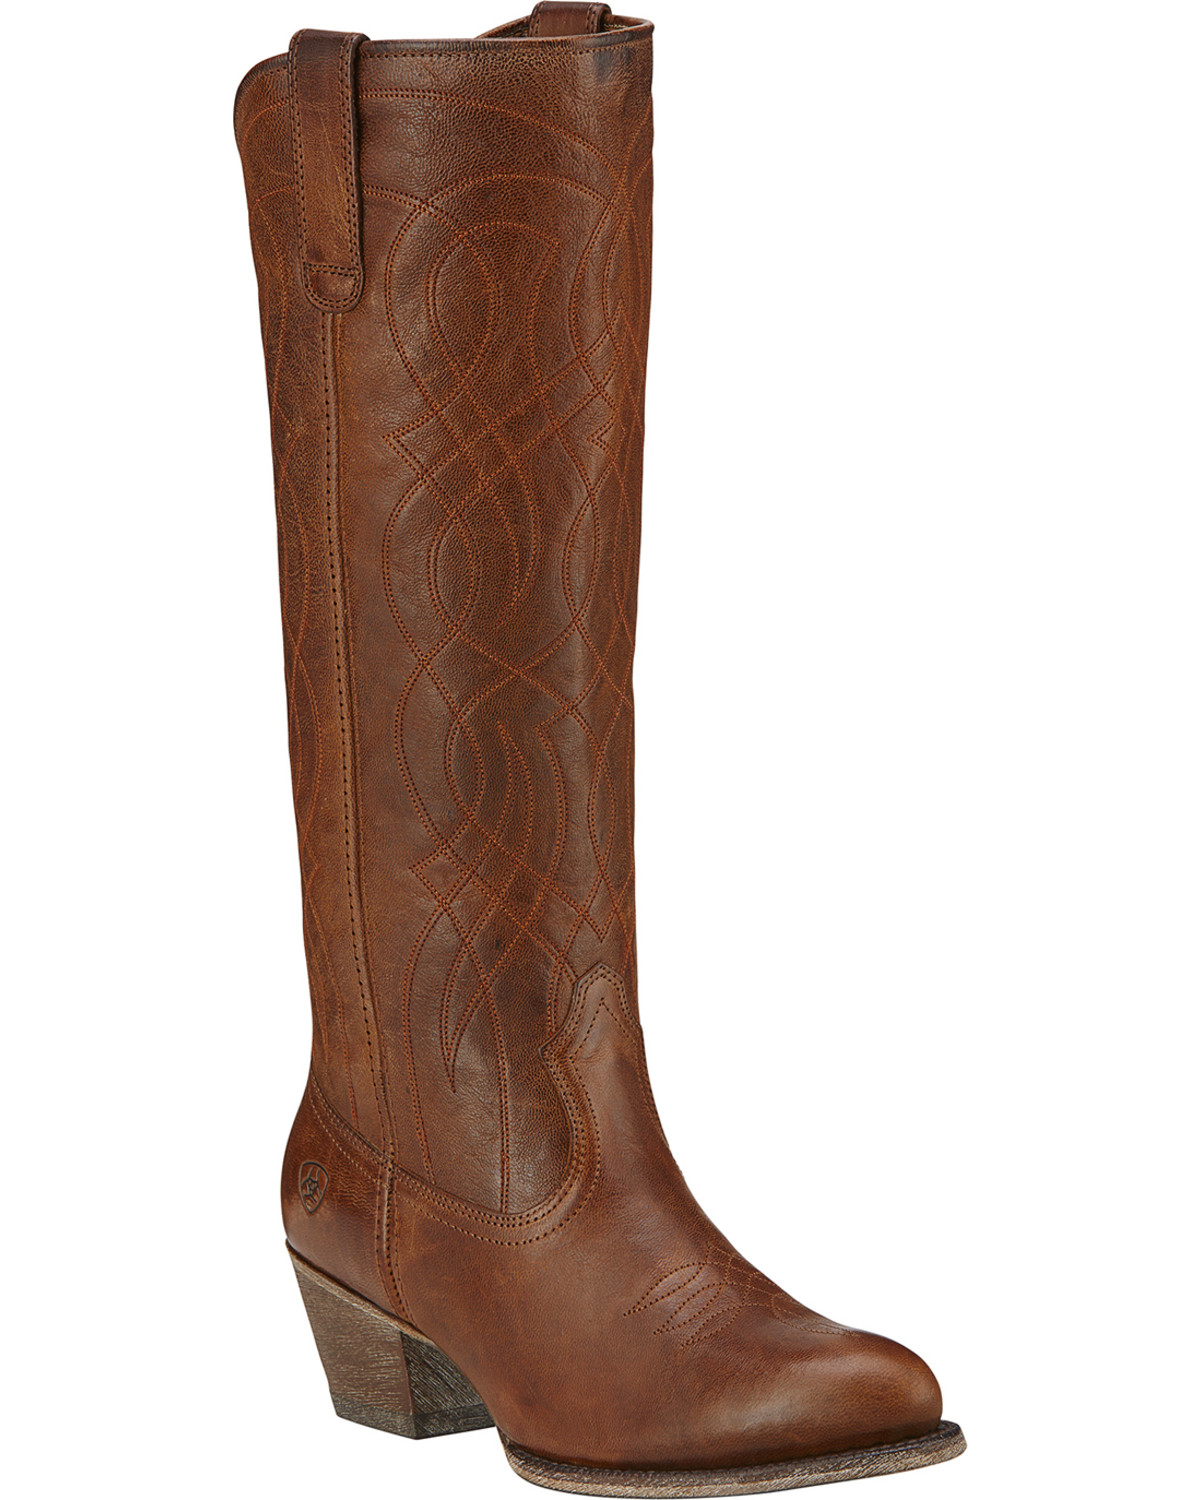 db589a934d3 Ariat Women s Singsong Western Fashion Boots